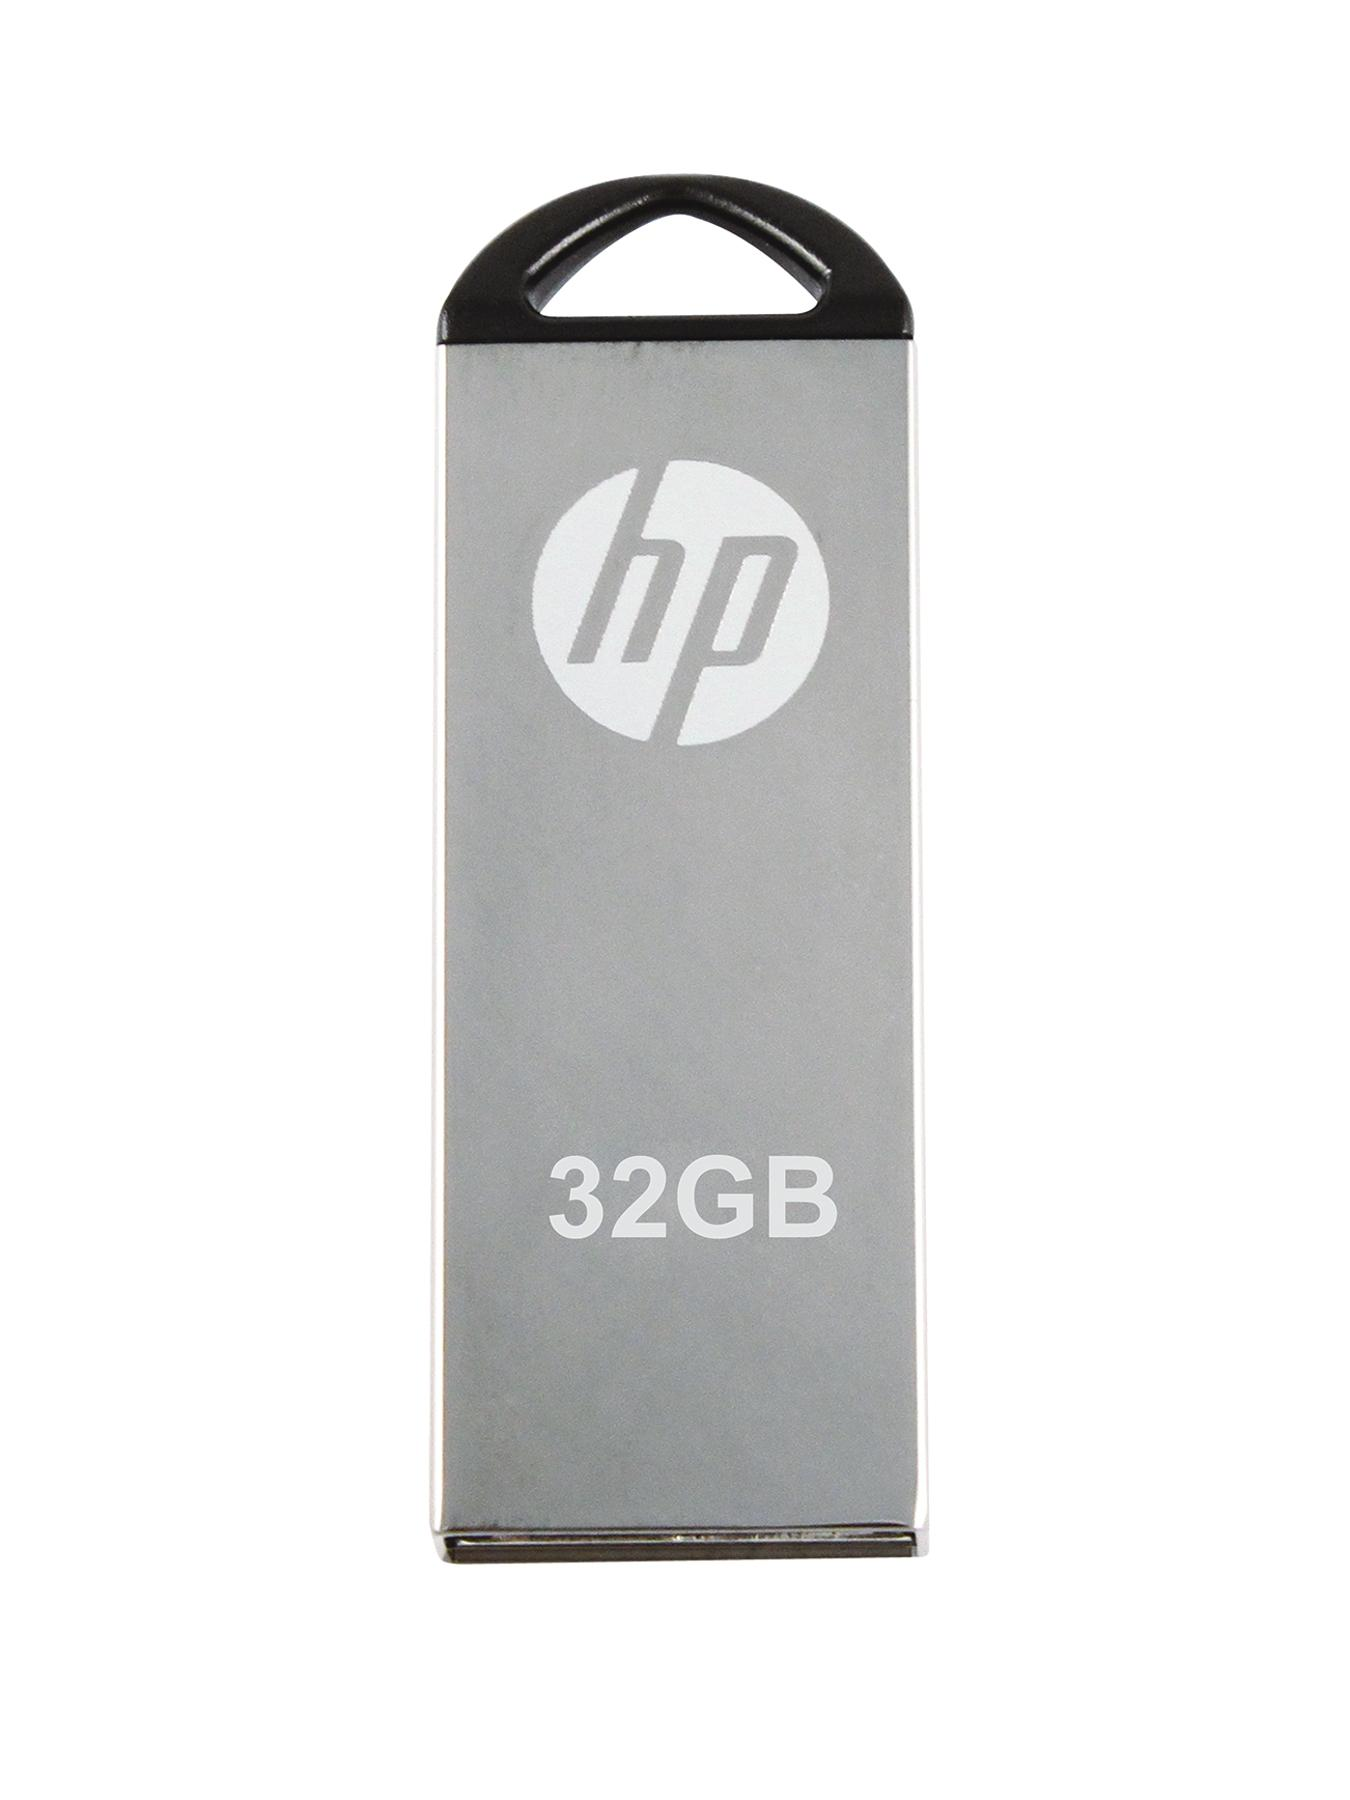 32Gb Metal HP USB Drive